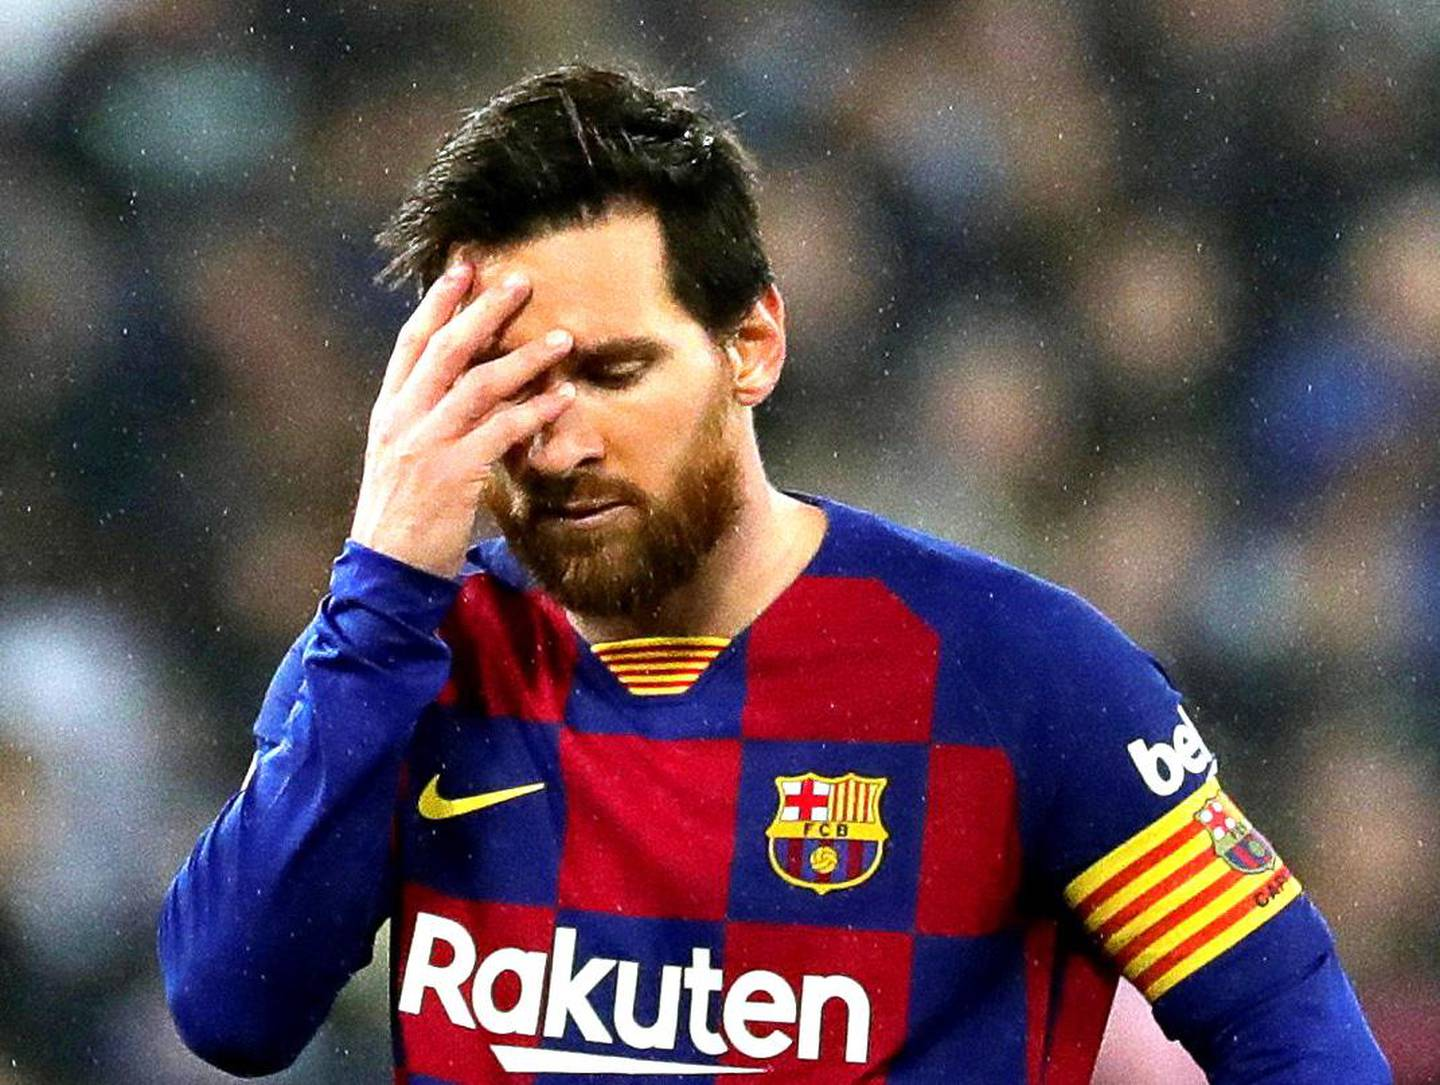 epa08625650 (FILE) - FC Barcelona's Lionel Messi reacts during the Spanish La Liga soccer match between Real Madrid and FC Barcelona, traditionally known as 'El Clasico', at Santiago Bernabeu stadium in Madrid, Spain, 01 March 2020, re-issued 25 August 2020. Messi has sent a certified letter to the club  on 25 August communicating his intentions to leave the club.  EPA/JUANJO MARTIN